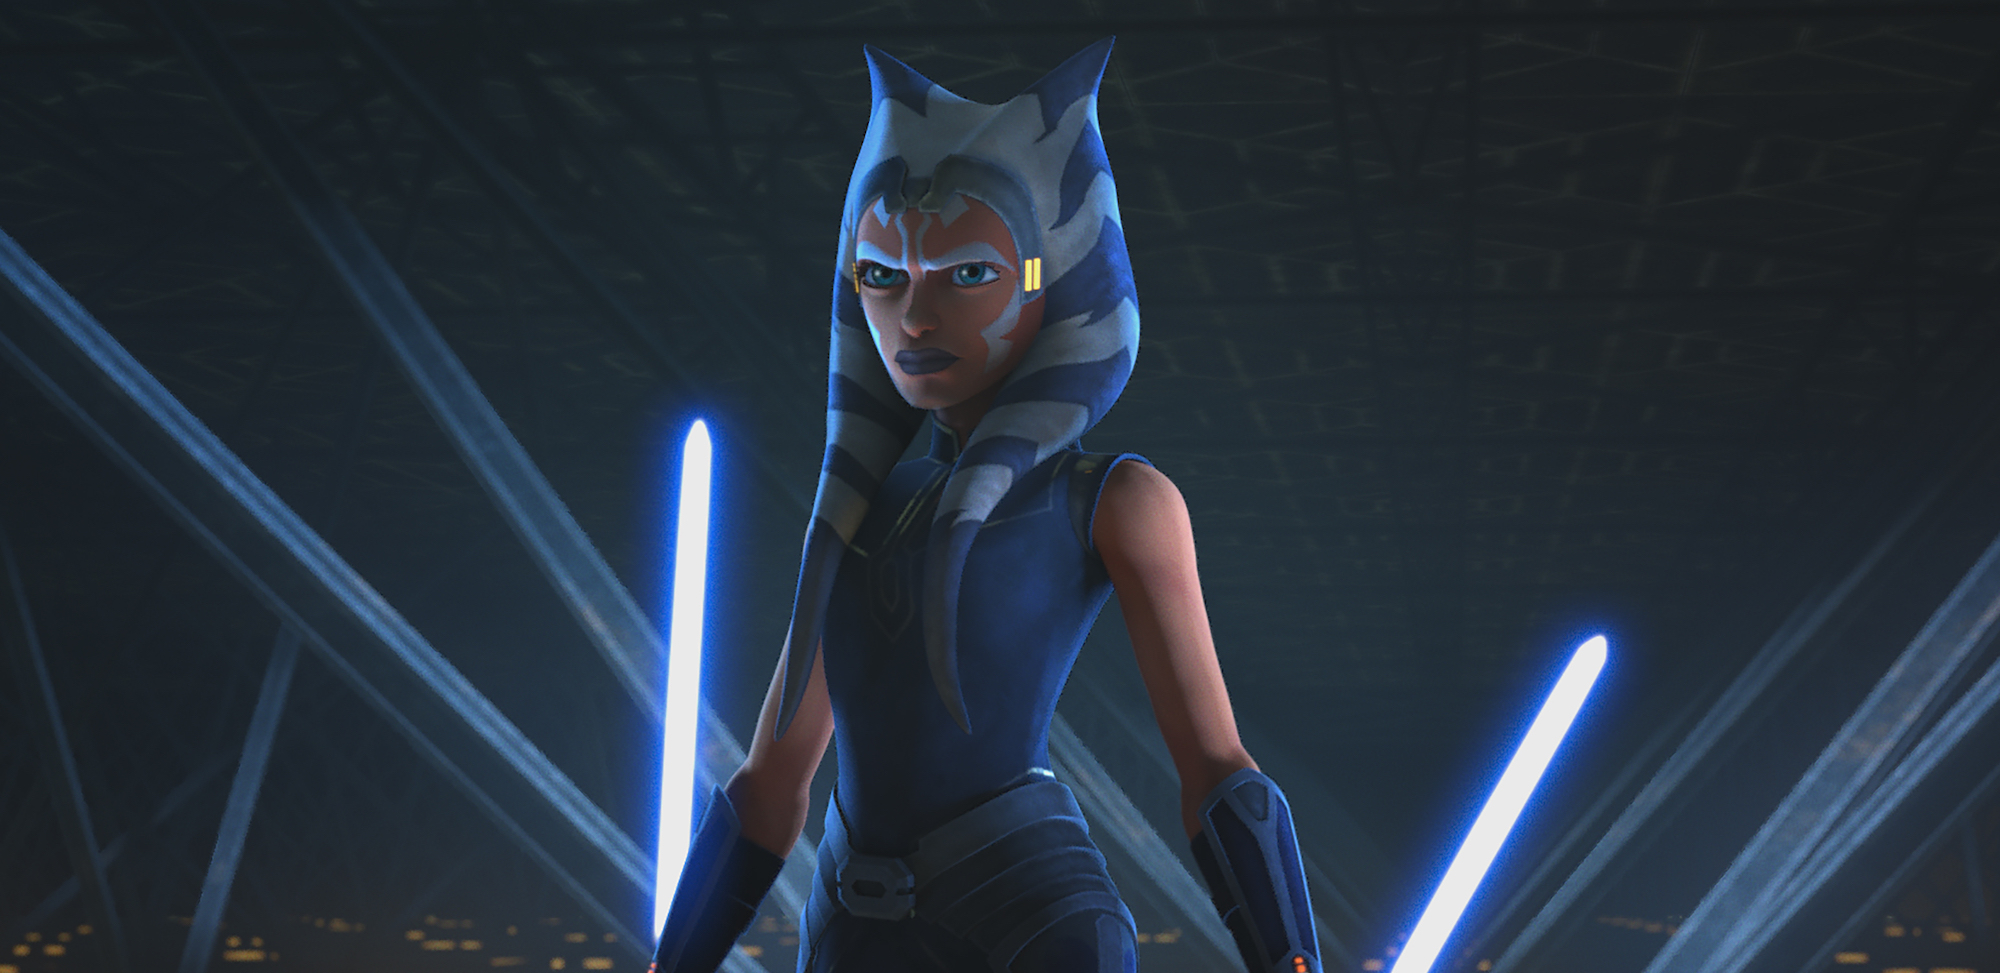 Ahsoka Tano in Season 7 in 'Star Wars: The Clone Wars'